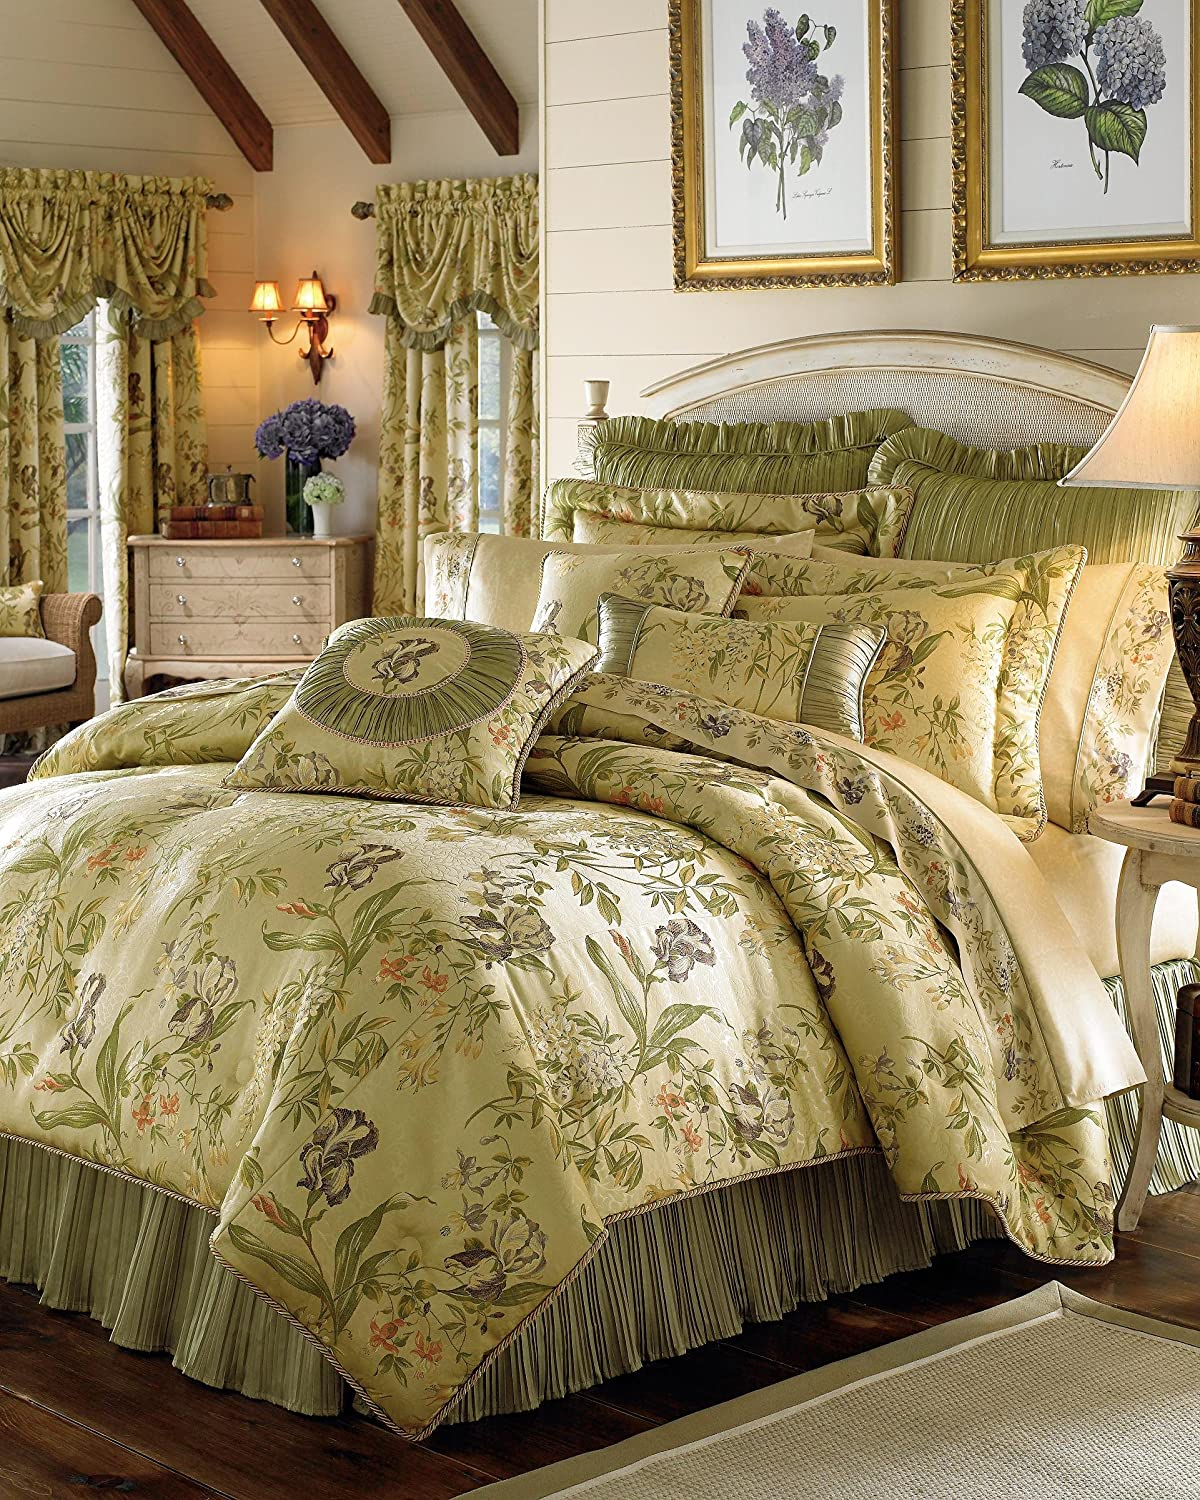 Victorian Bedding Ensembles Opulence And Luxury Fit For A